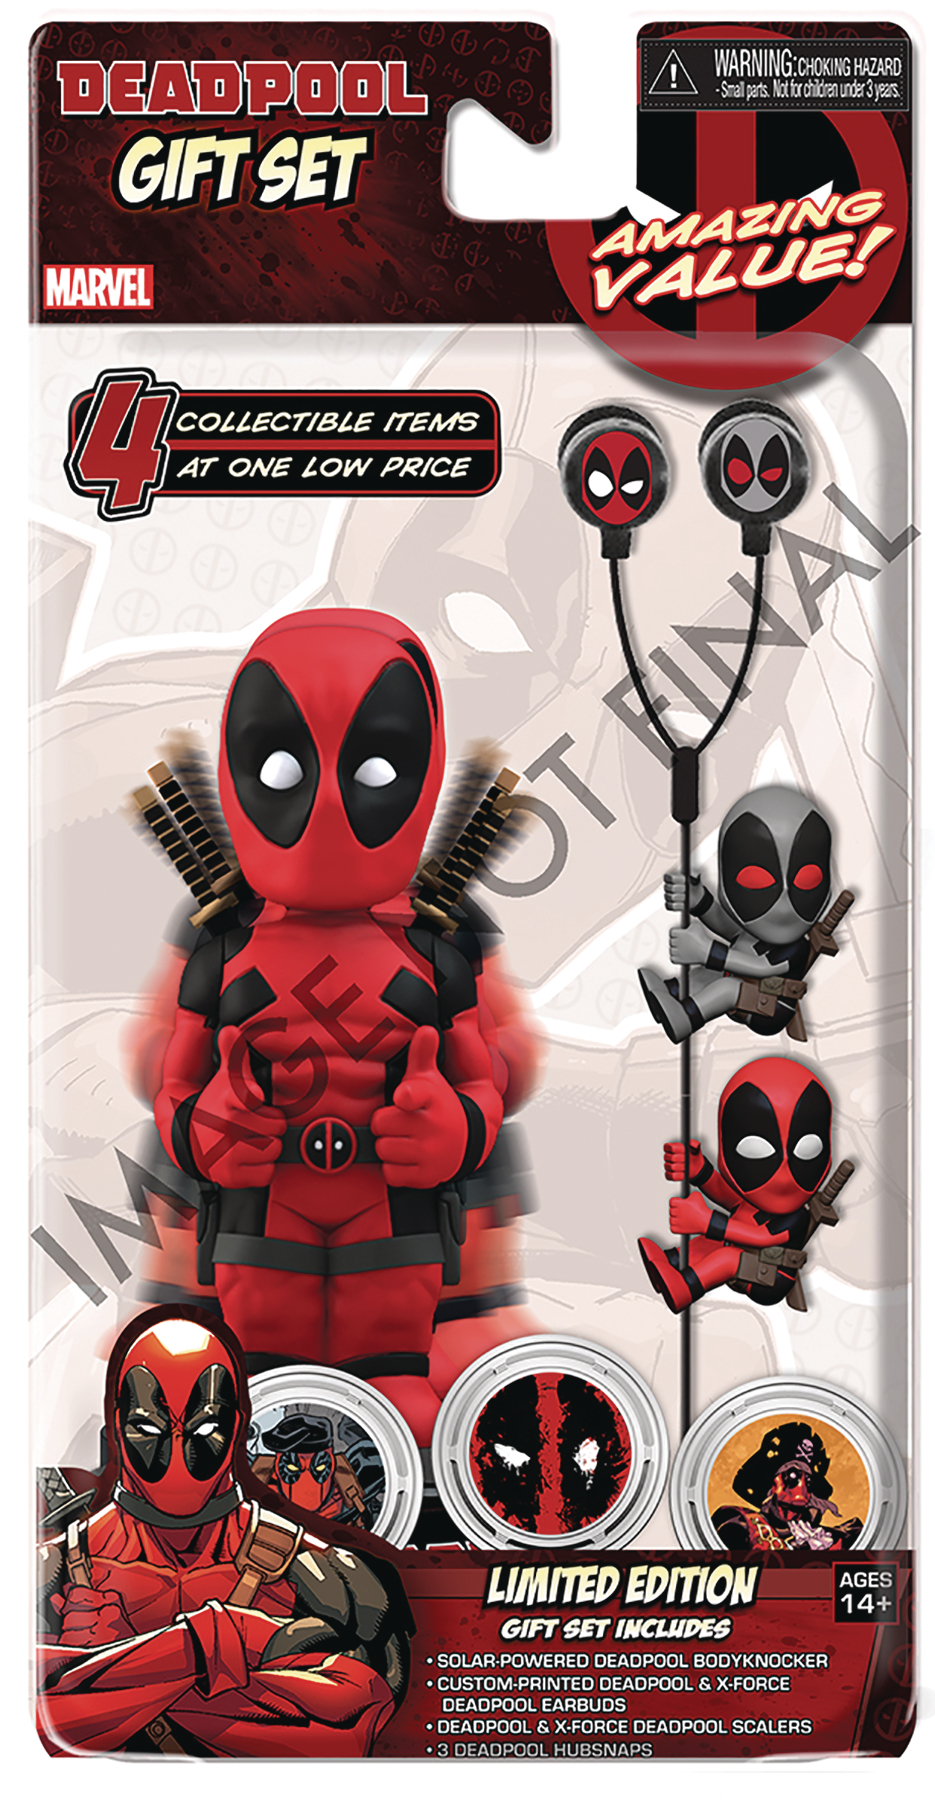 MARVEL HEROES DEADPOOL LIMITED EDITION GIFT SET NECA From NECA. Show off your favorite Marvel character with this limited edition gift set, which includes four collectible items based on Deadpool an amazing value for fans of all ages! Set includes: Solar-Powered Deadpool Body Knocker standing roughly 8